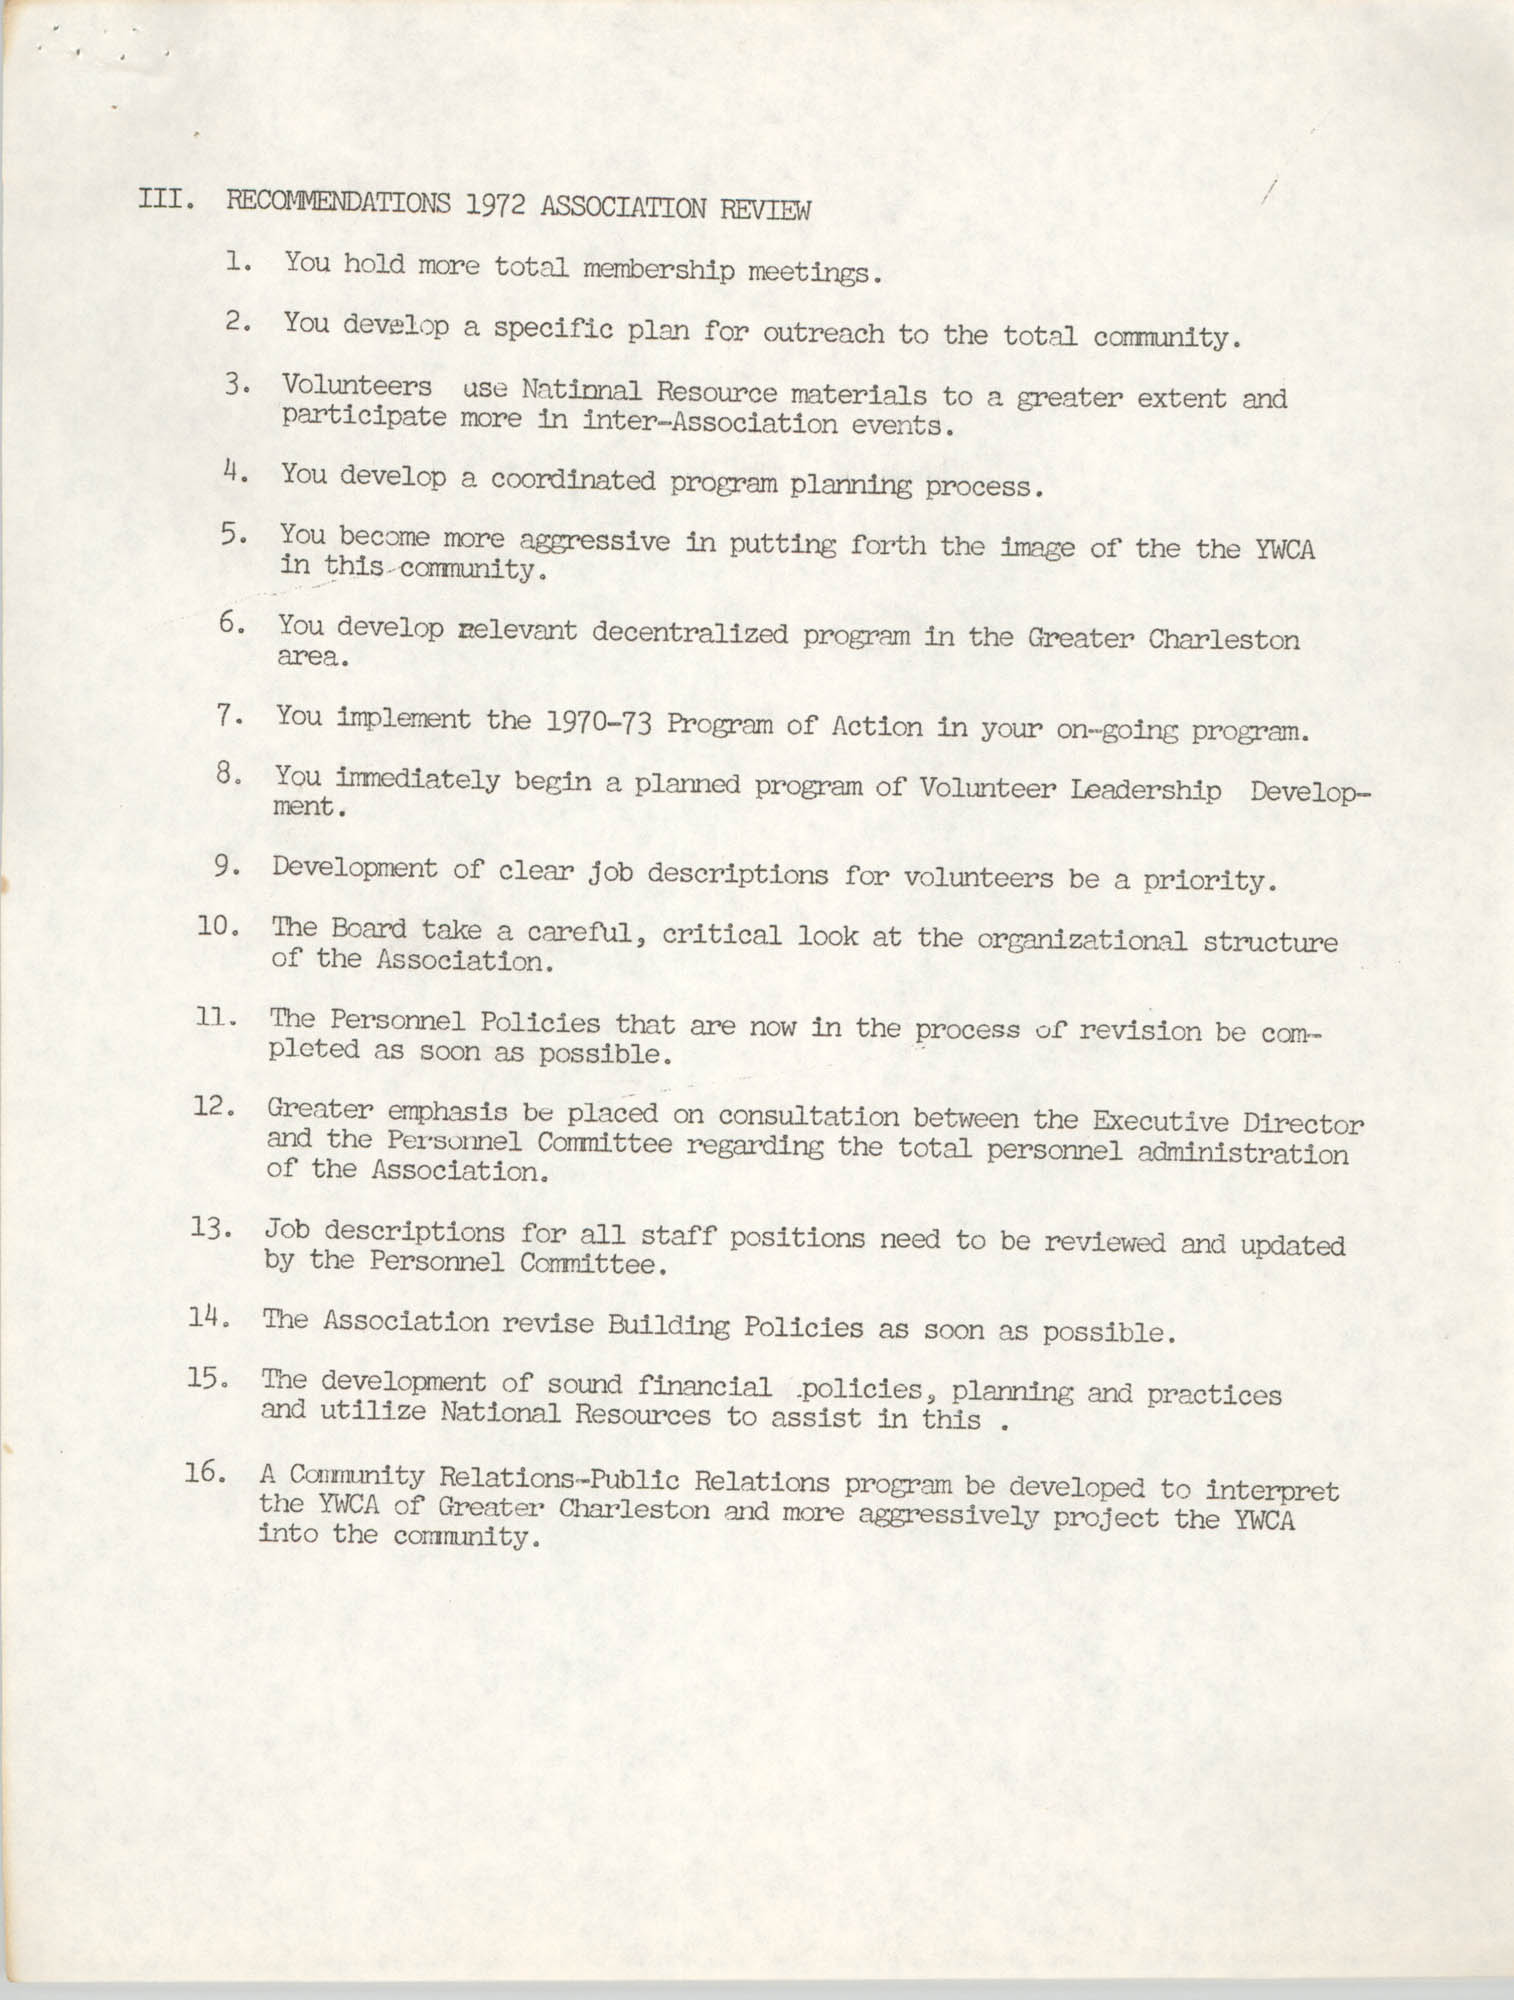 Y.W.C.A. of Greater Charleston Recommendations 1972 Association Review